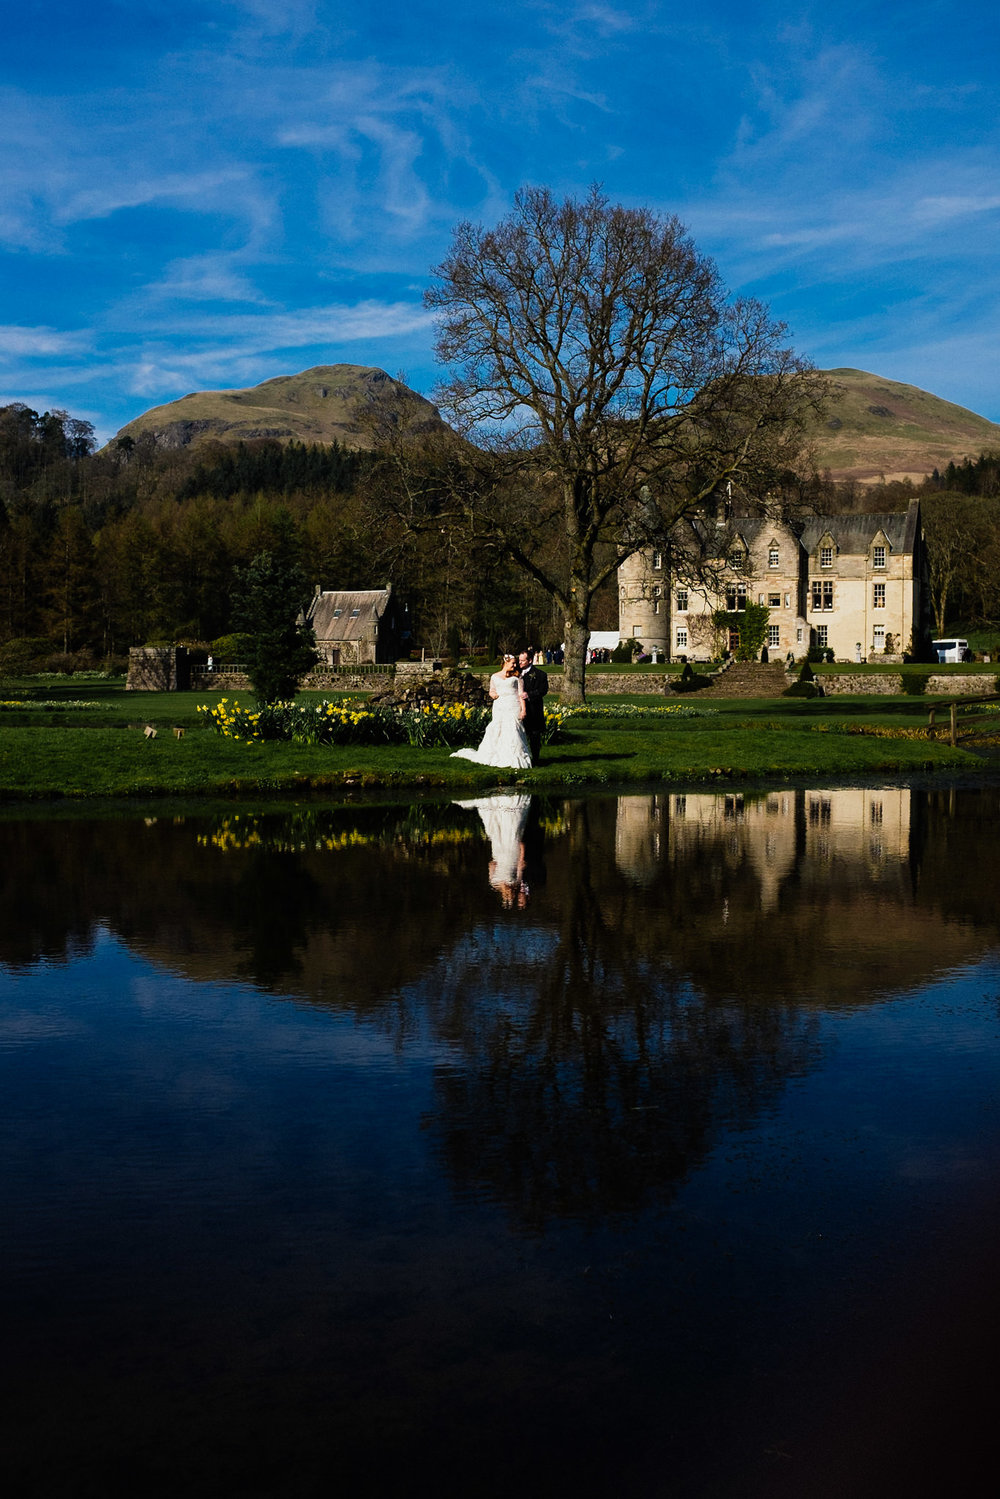 Scottish Castle Wedding_Duntreath Castle_Euan Robertson Photography_014.jpg